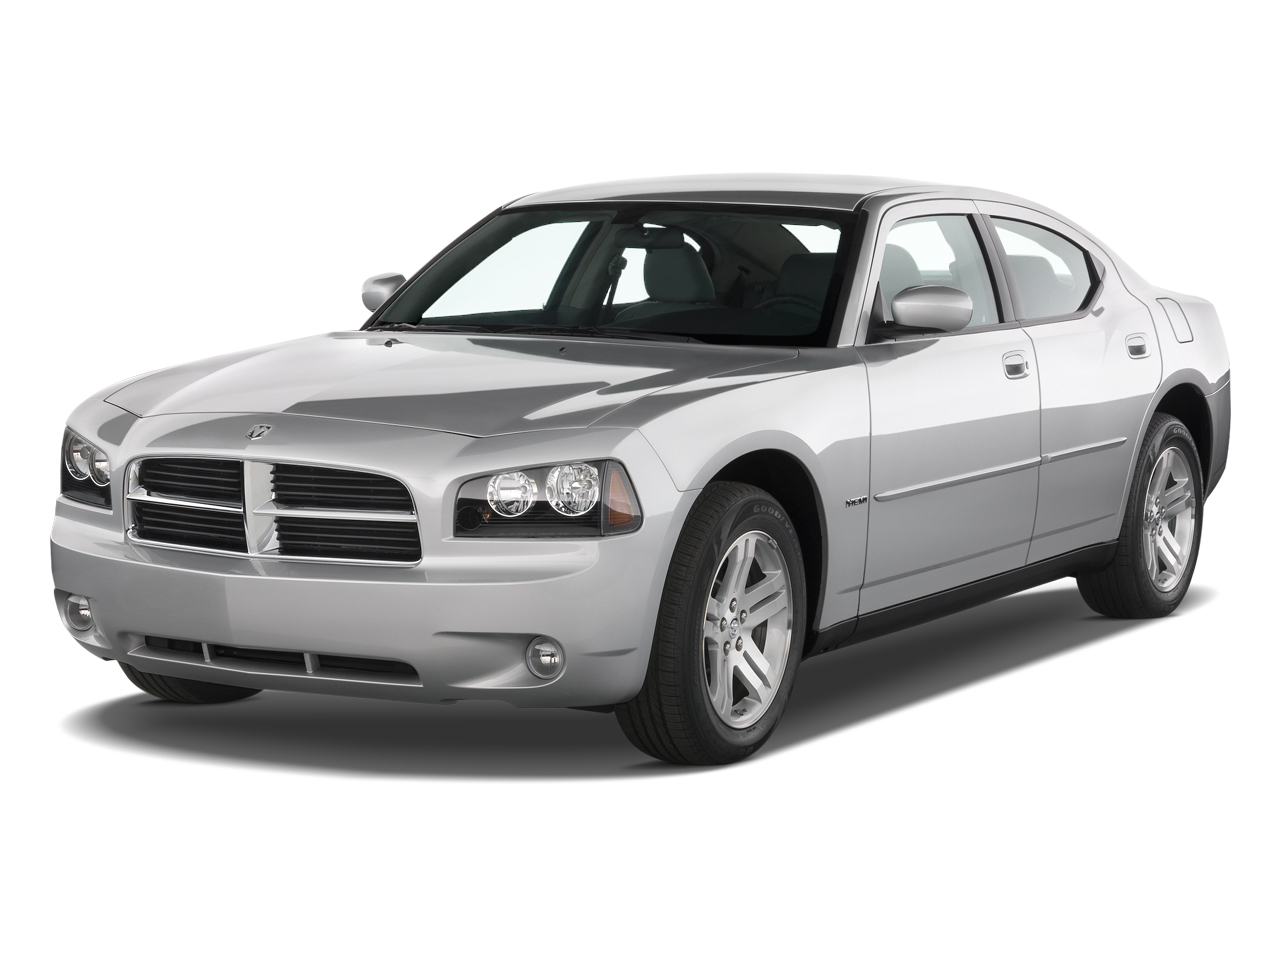 2010 Dodge Charger Review and News - MotorAuthority